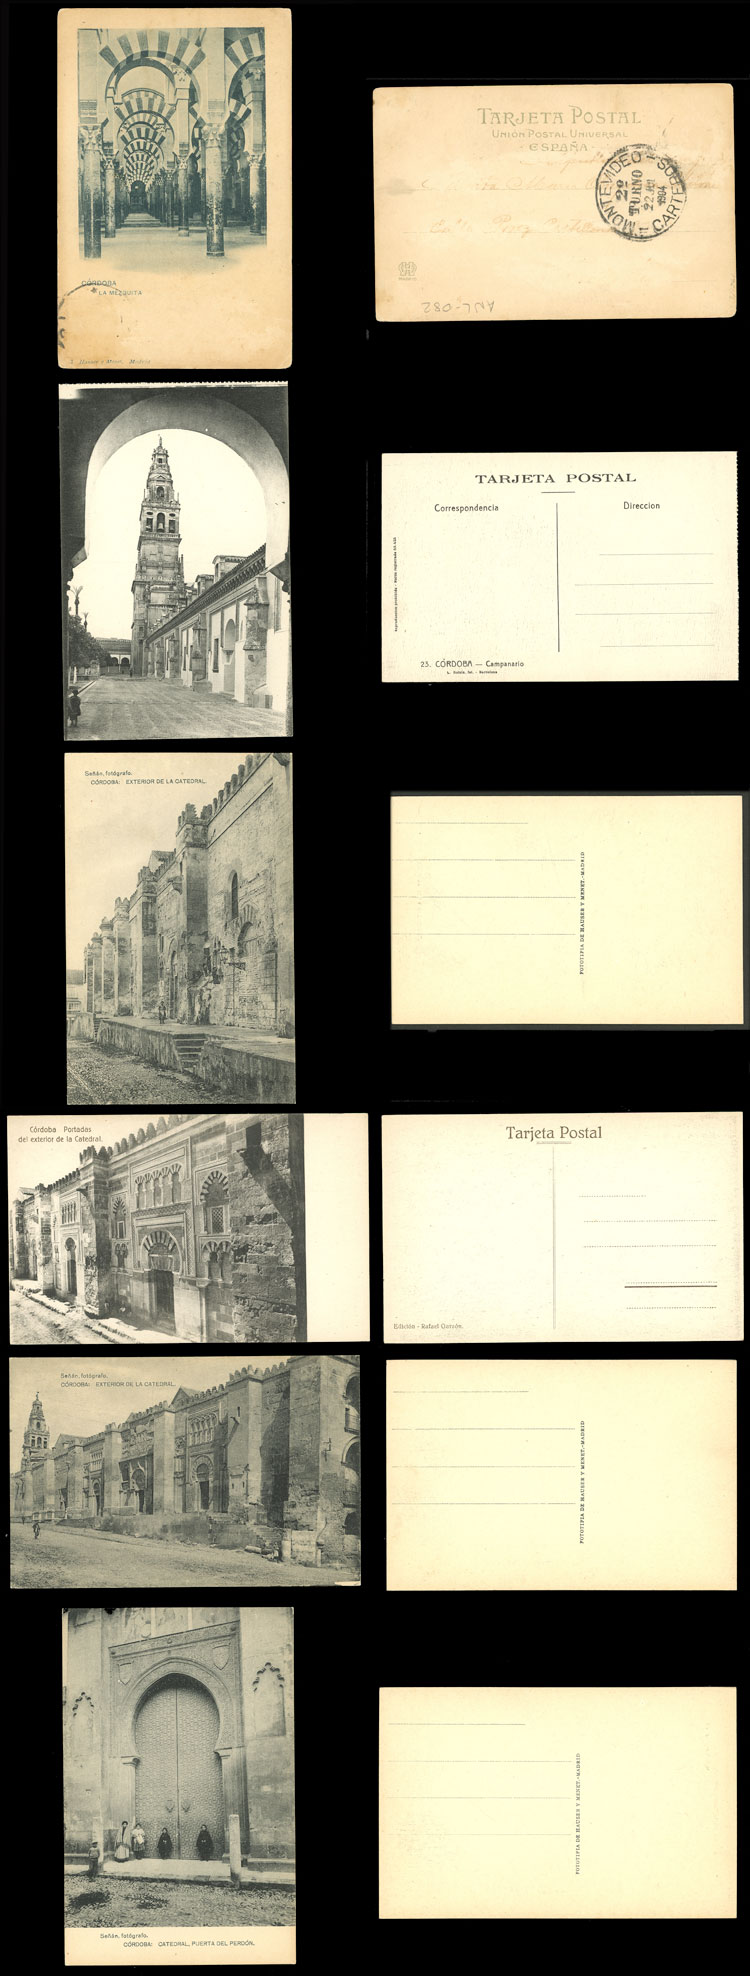 Lot 760 - Spain postcards -  Guillermo Jalil - Philatino Auction # 2110 WORLDWIDE + ARGENTINA: End of Summer auction